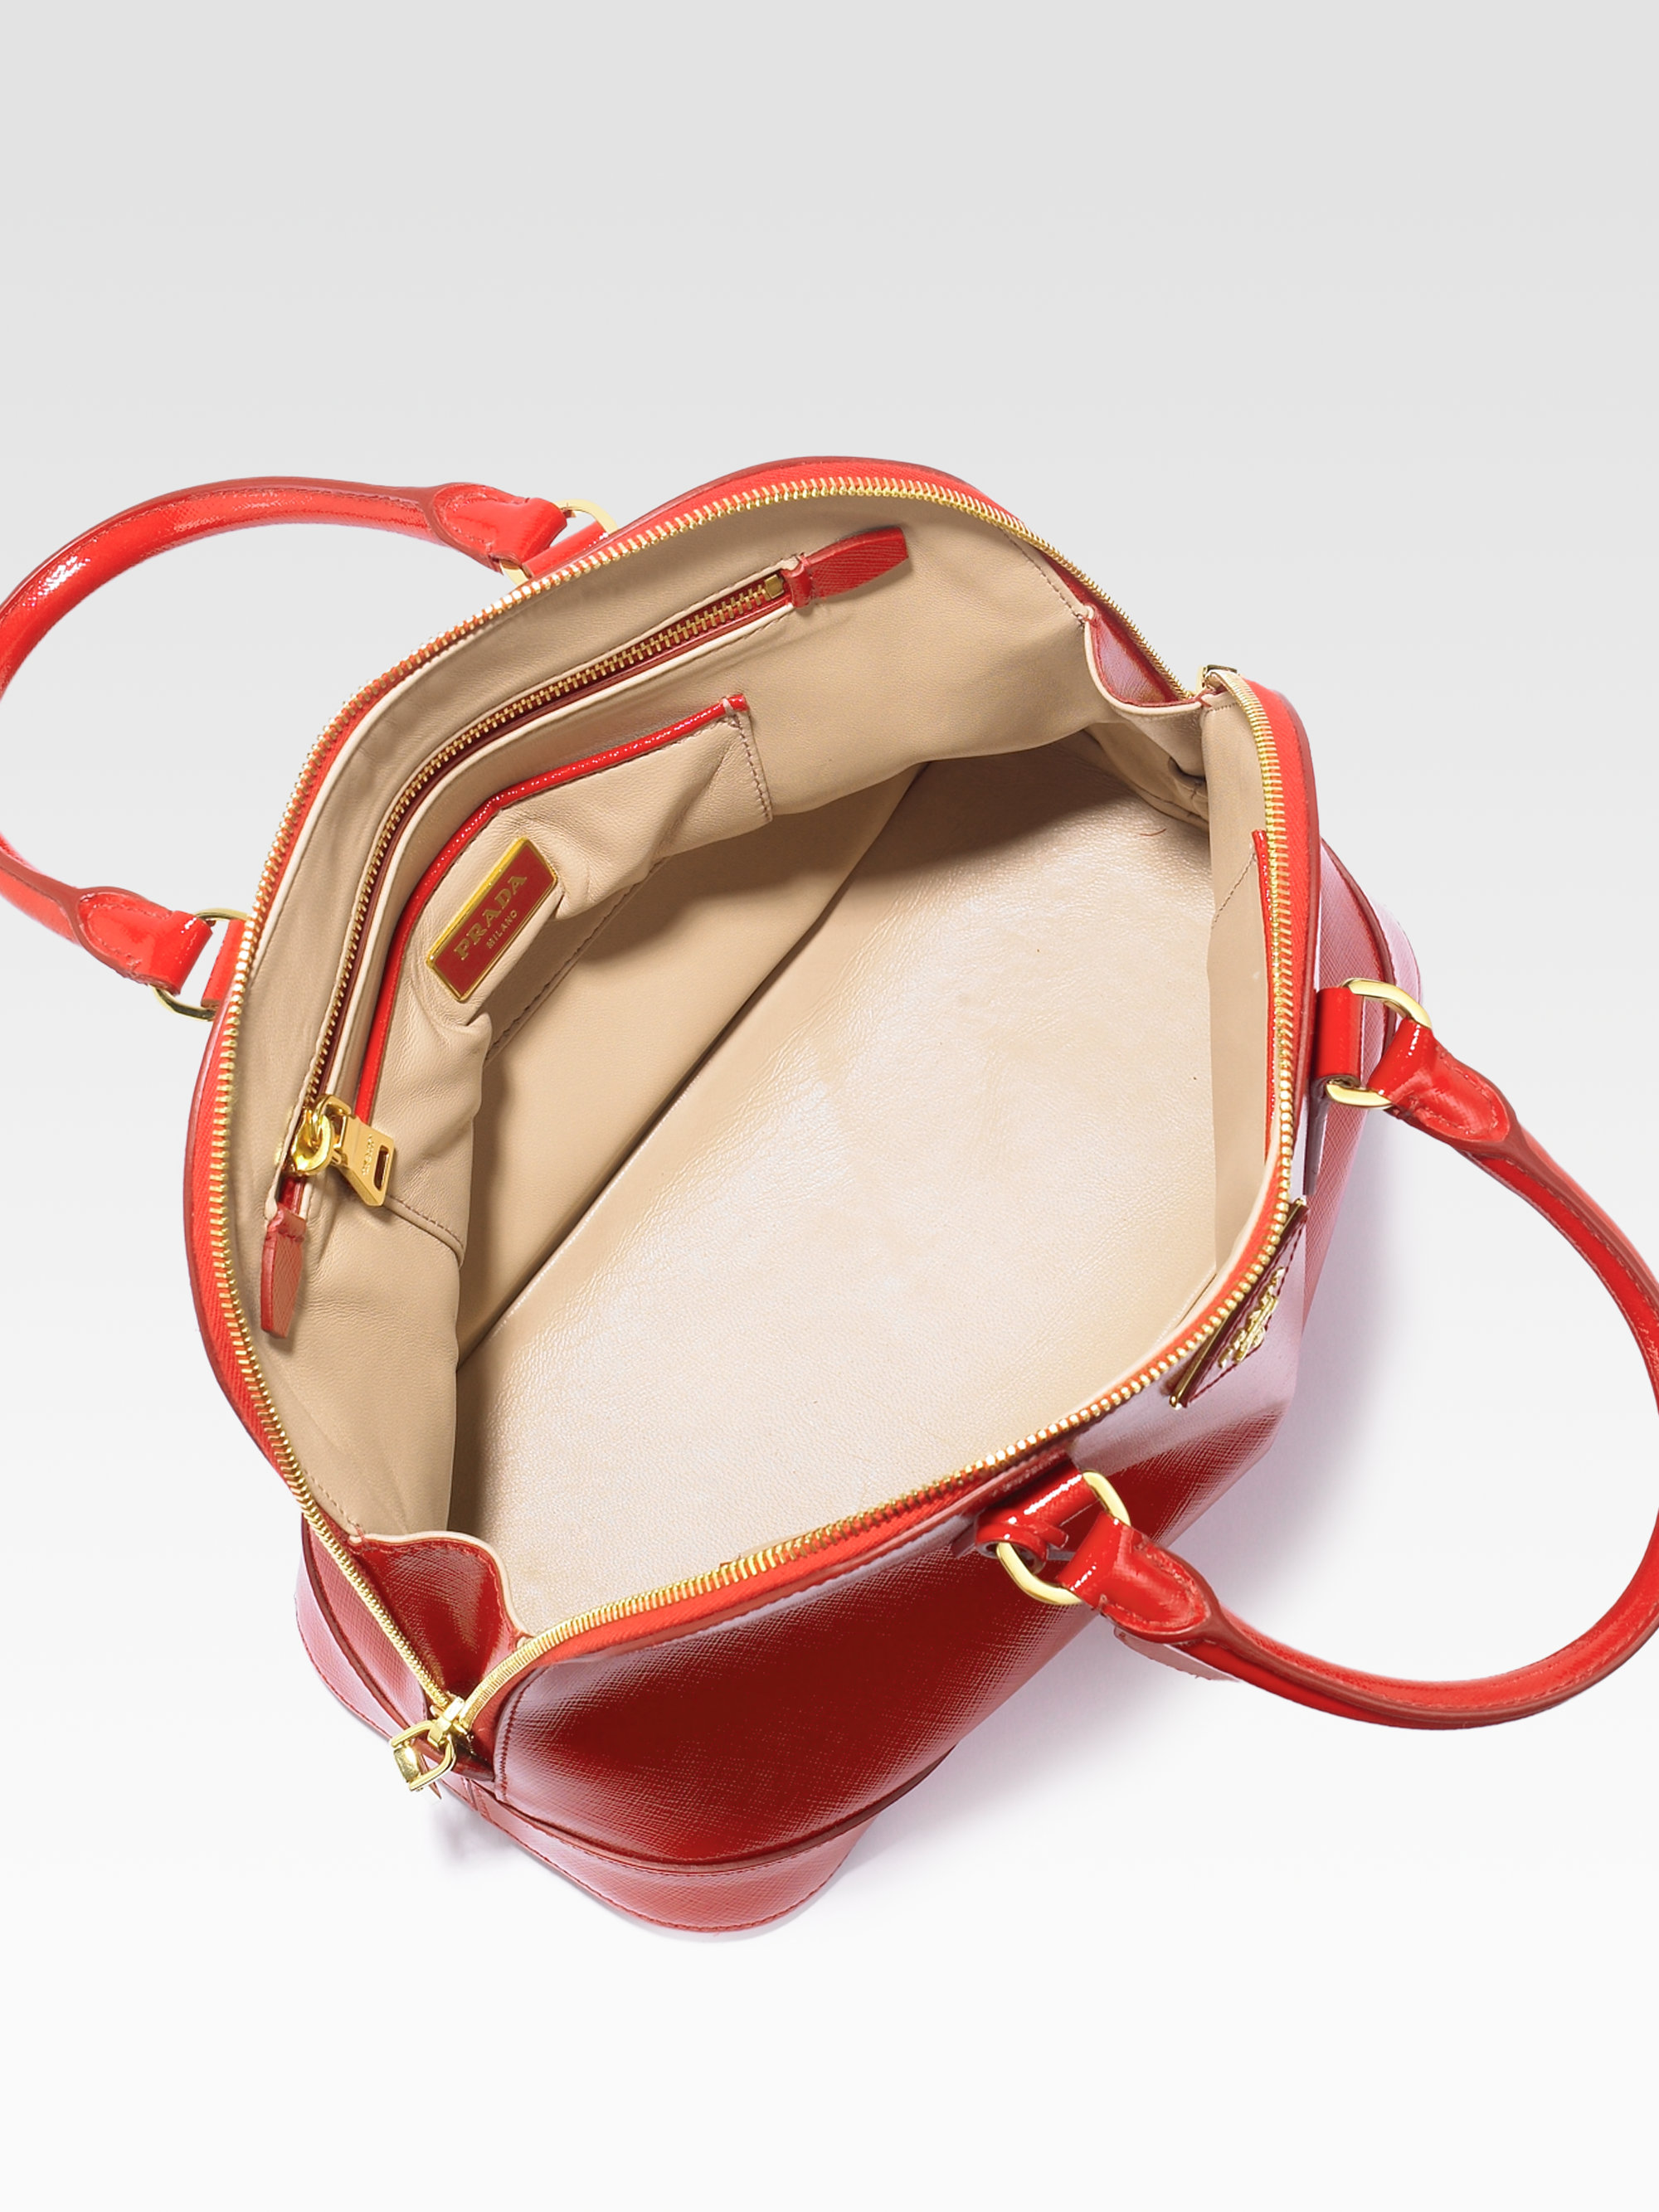 Prada Saffiano Vernice Bugatti Top Handle Bag in Red | Lyst